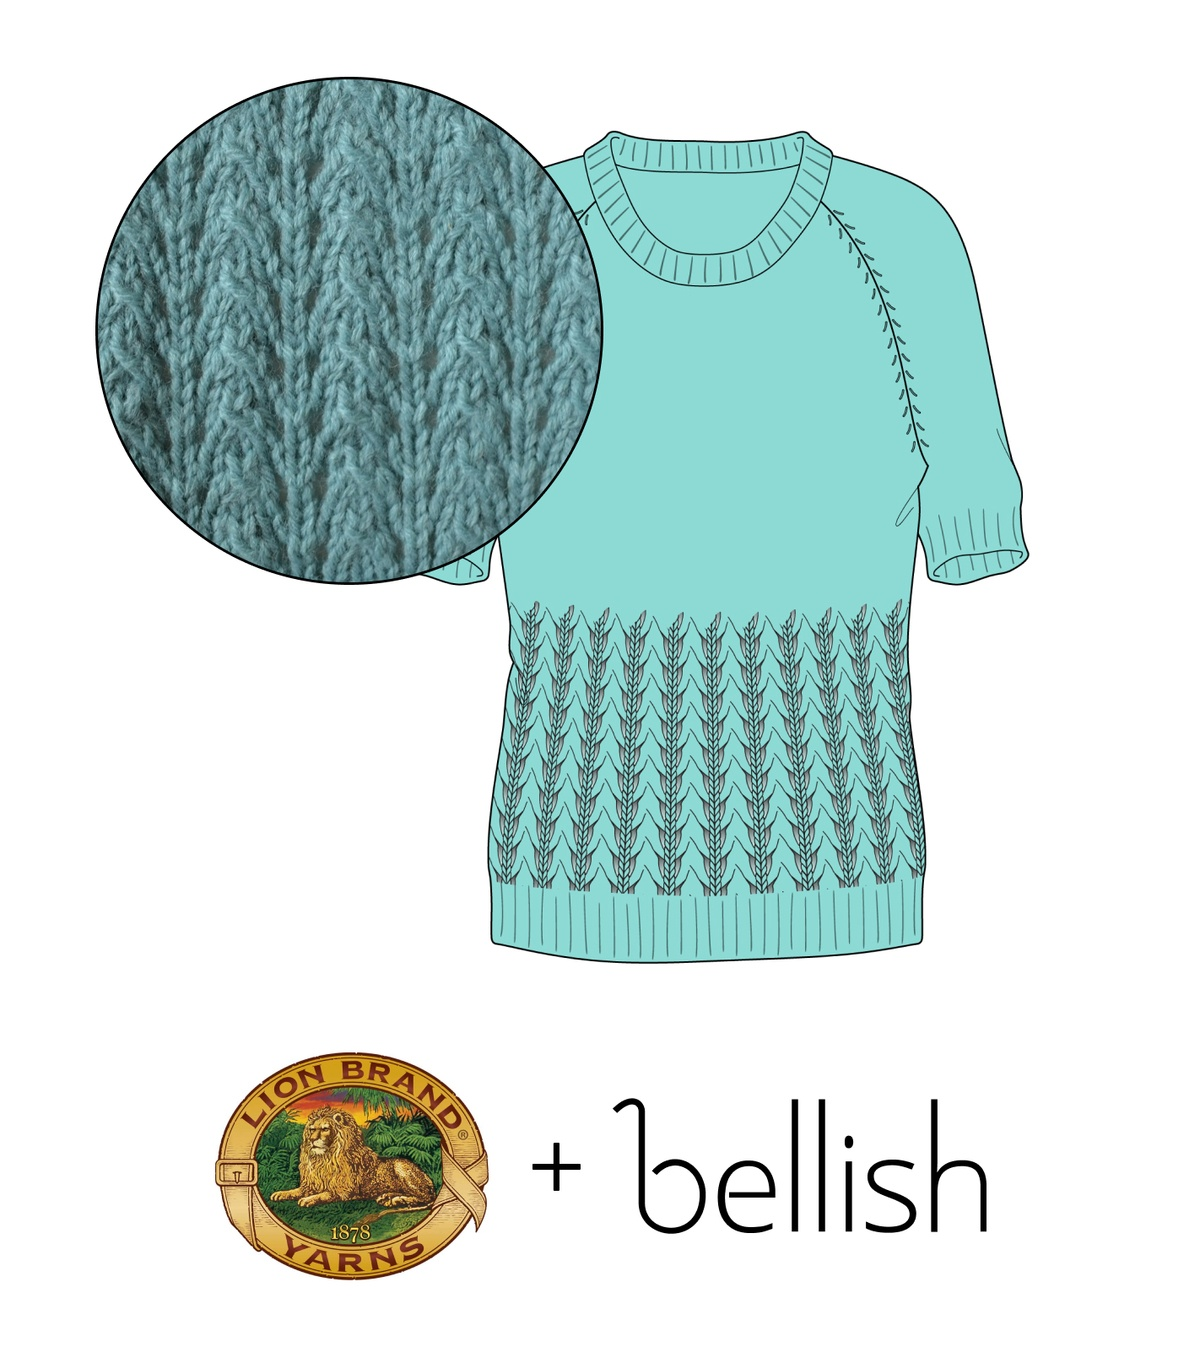 Bellish Little Fountain Lace Sweater Illustration with Swatch from Lion Brand Yarns